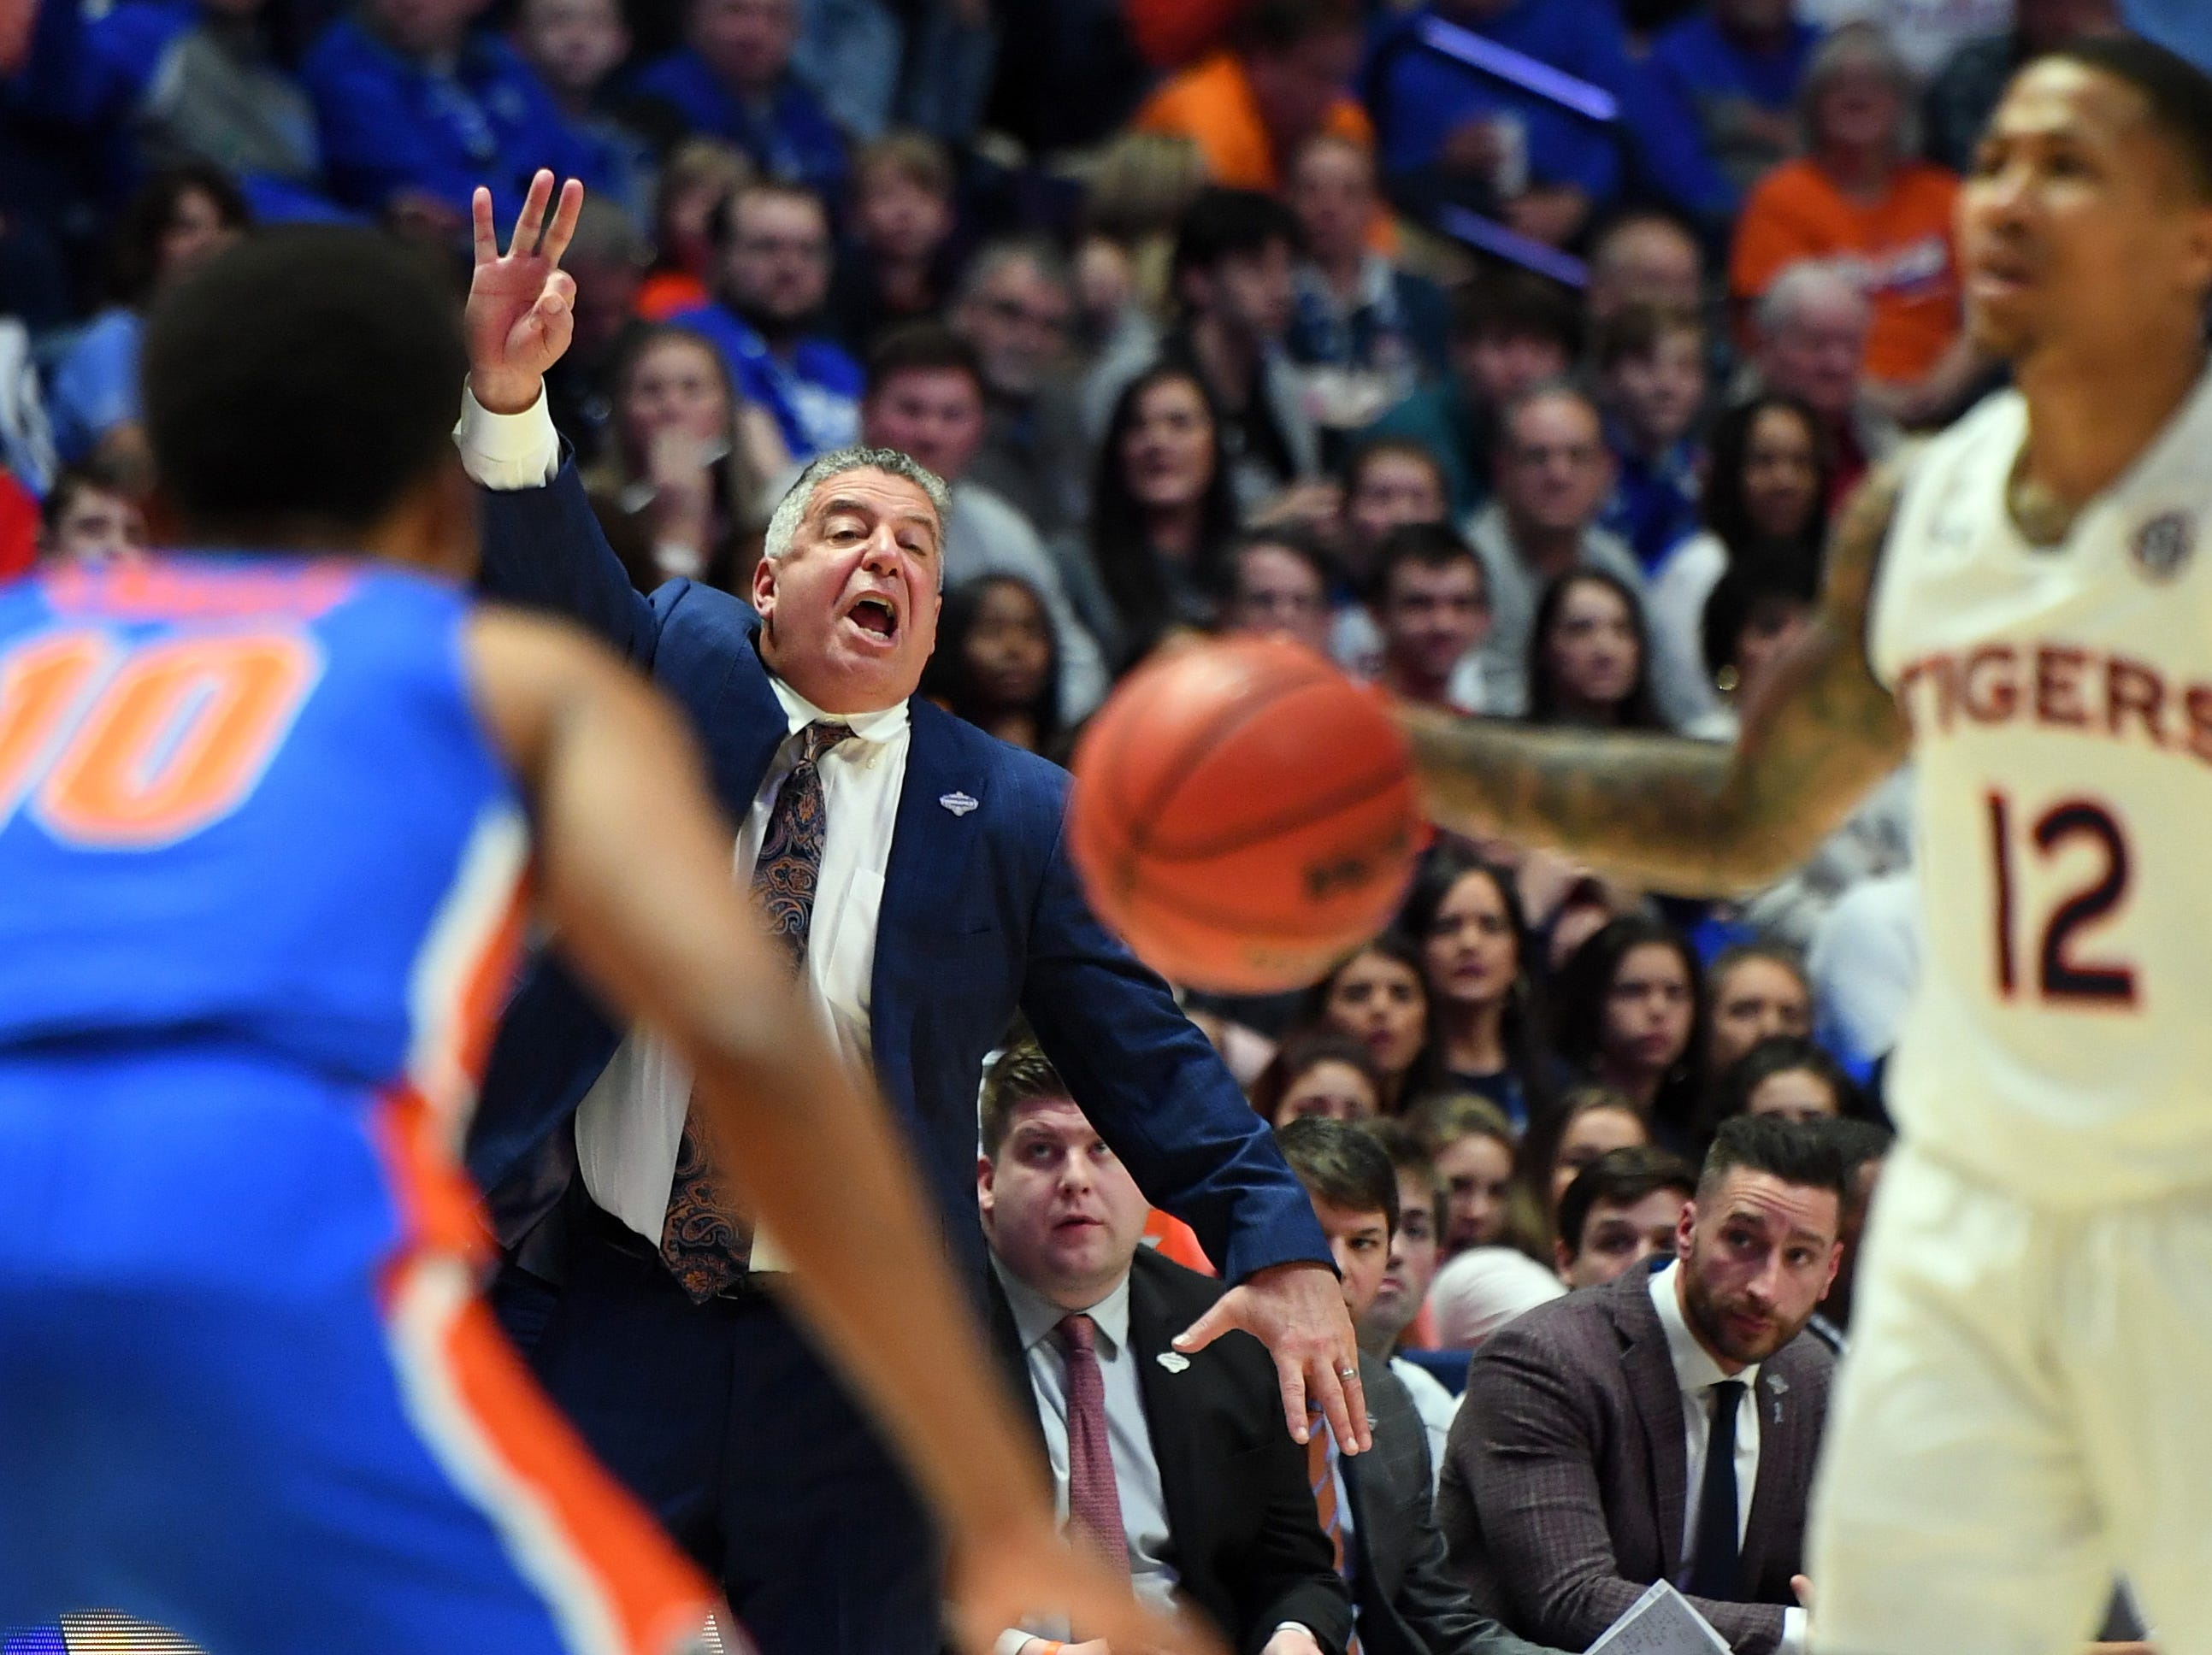 Mar 16, 2019; Nashville, TN, USA; Auburn Tigers head coach Bruce Pearl yells from the sidelines during the first half against the Florida Gators in the SEC conference tournament at Bridgestone Arena. Mandatory Credit: Christopher Hanewinckel-USA TODAY Sports